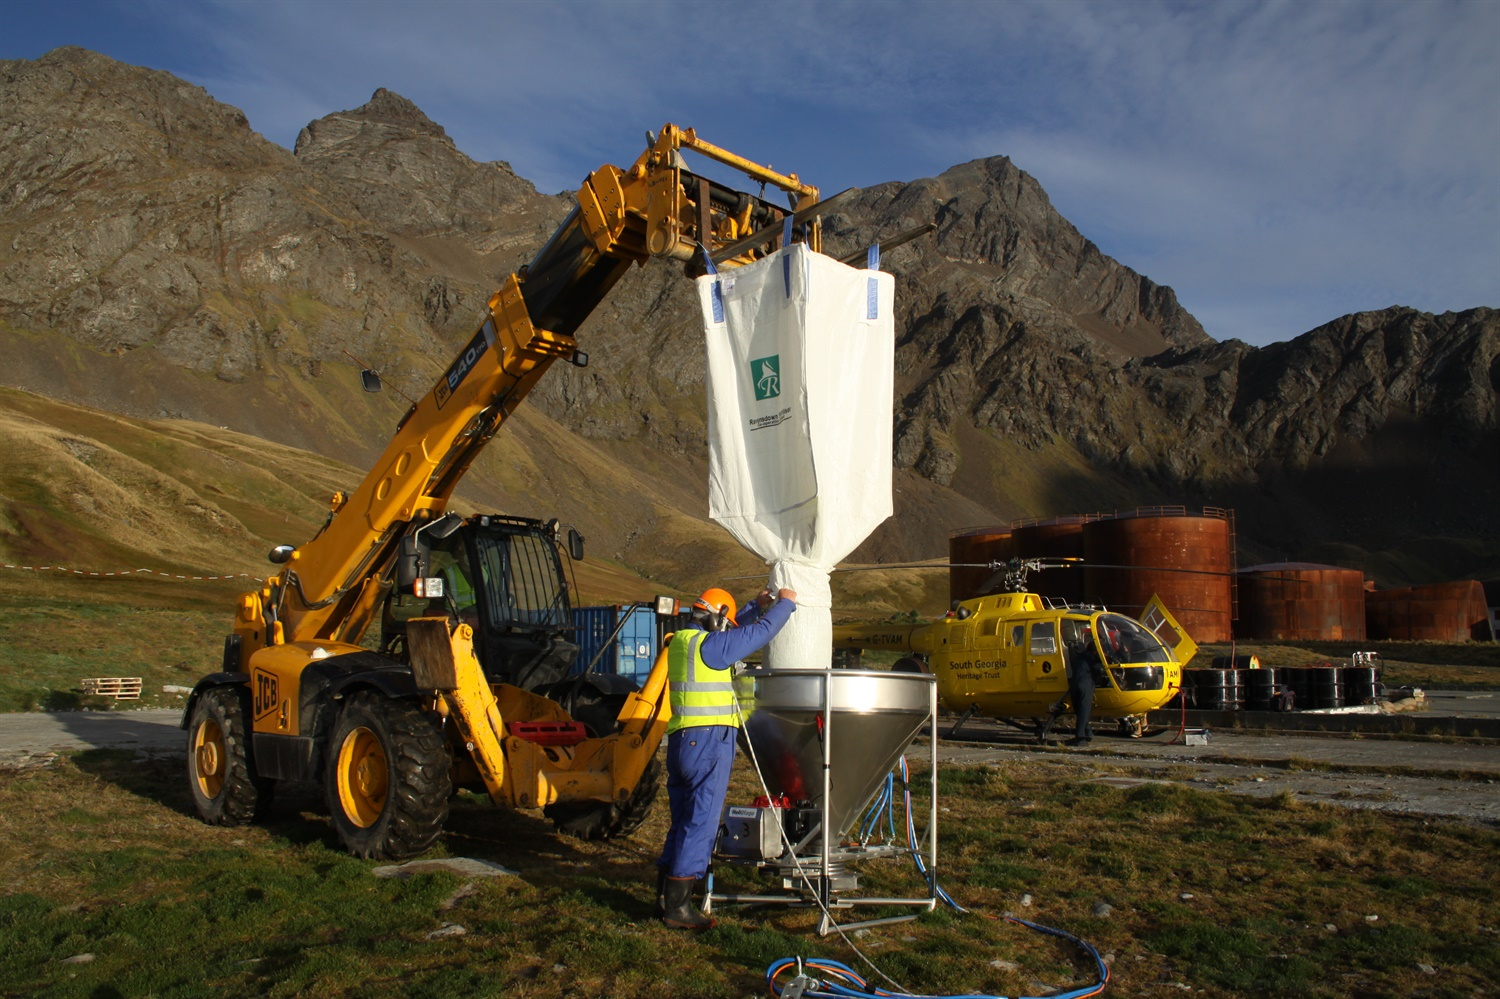 Locked and loaded on South Georgia – pest eradication on an industrial scale (image: Tony Martin)